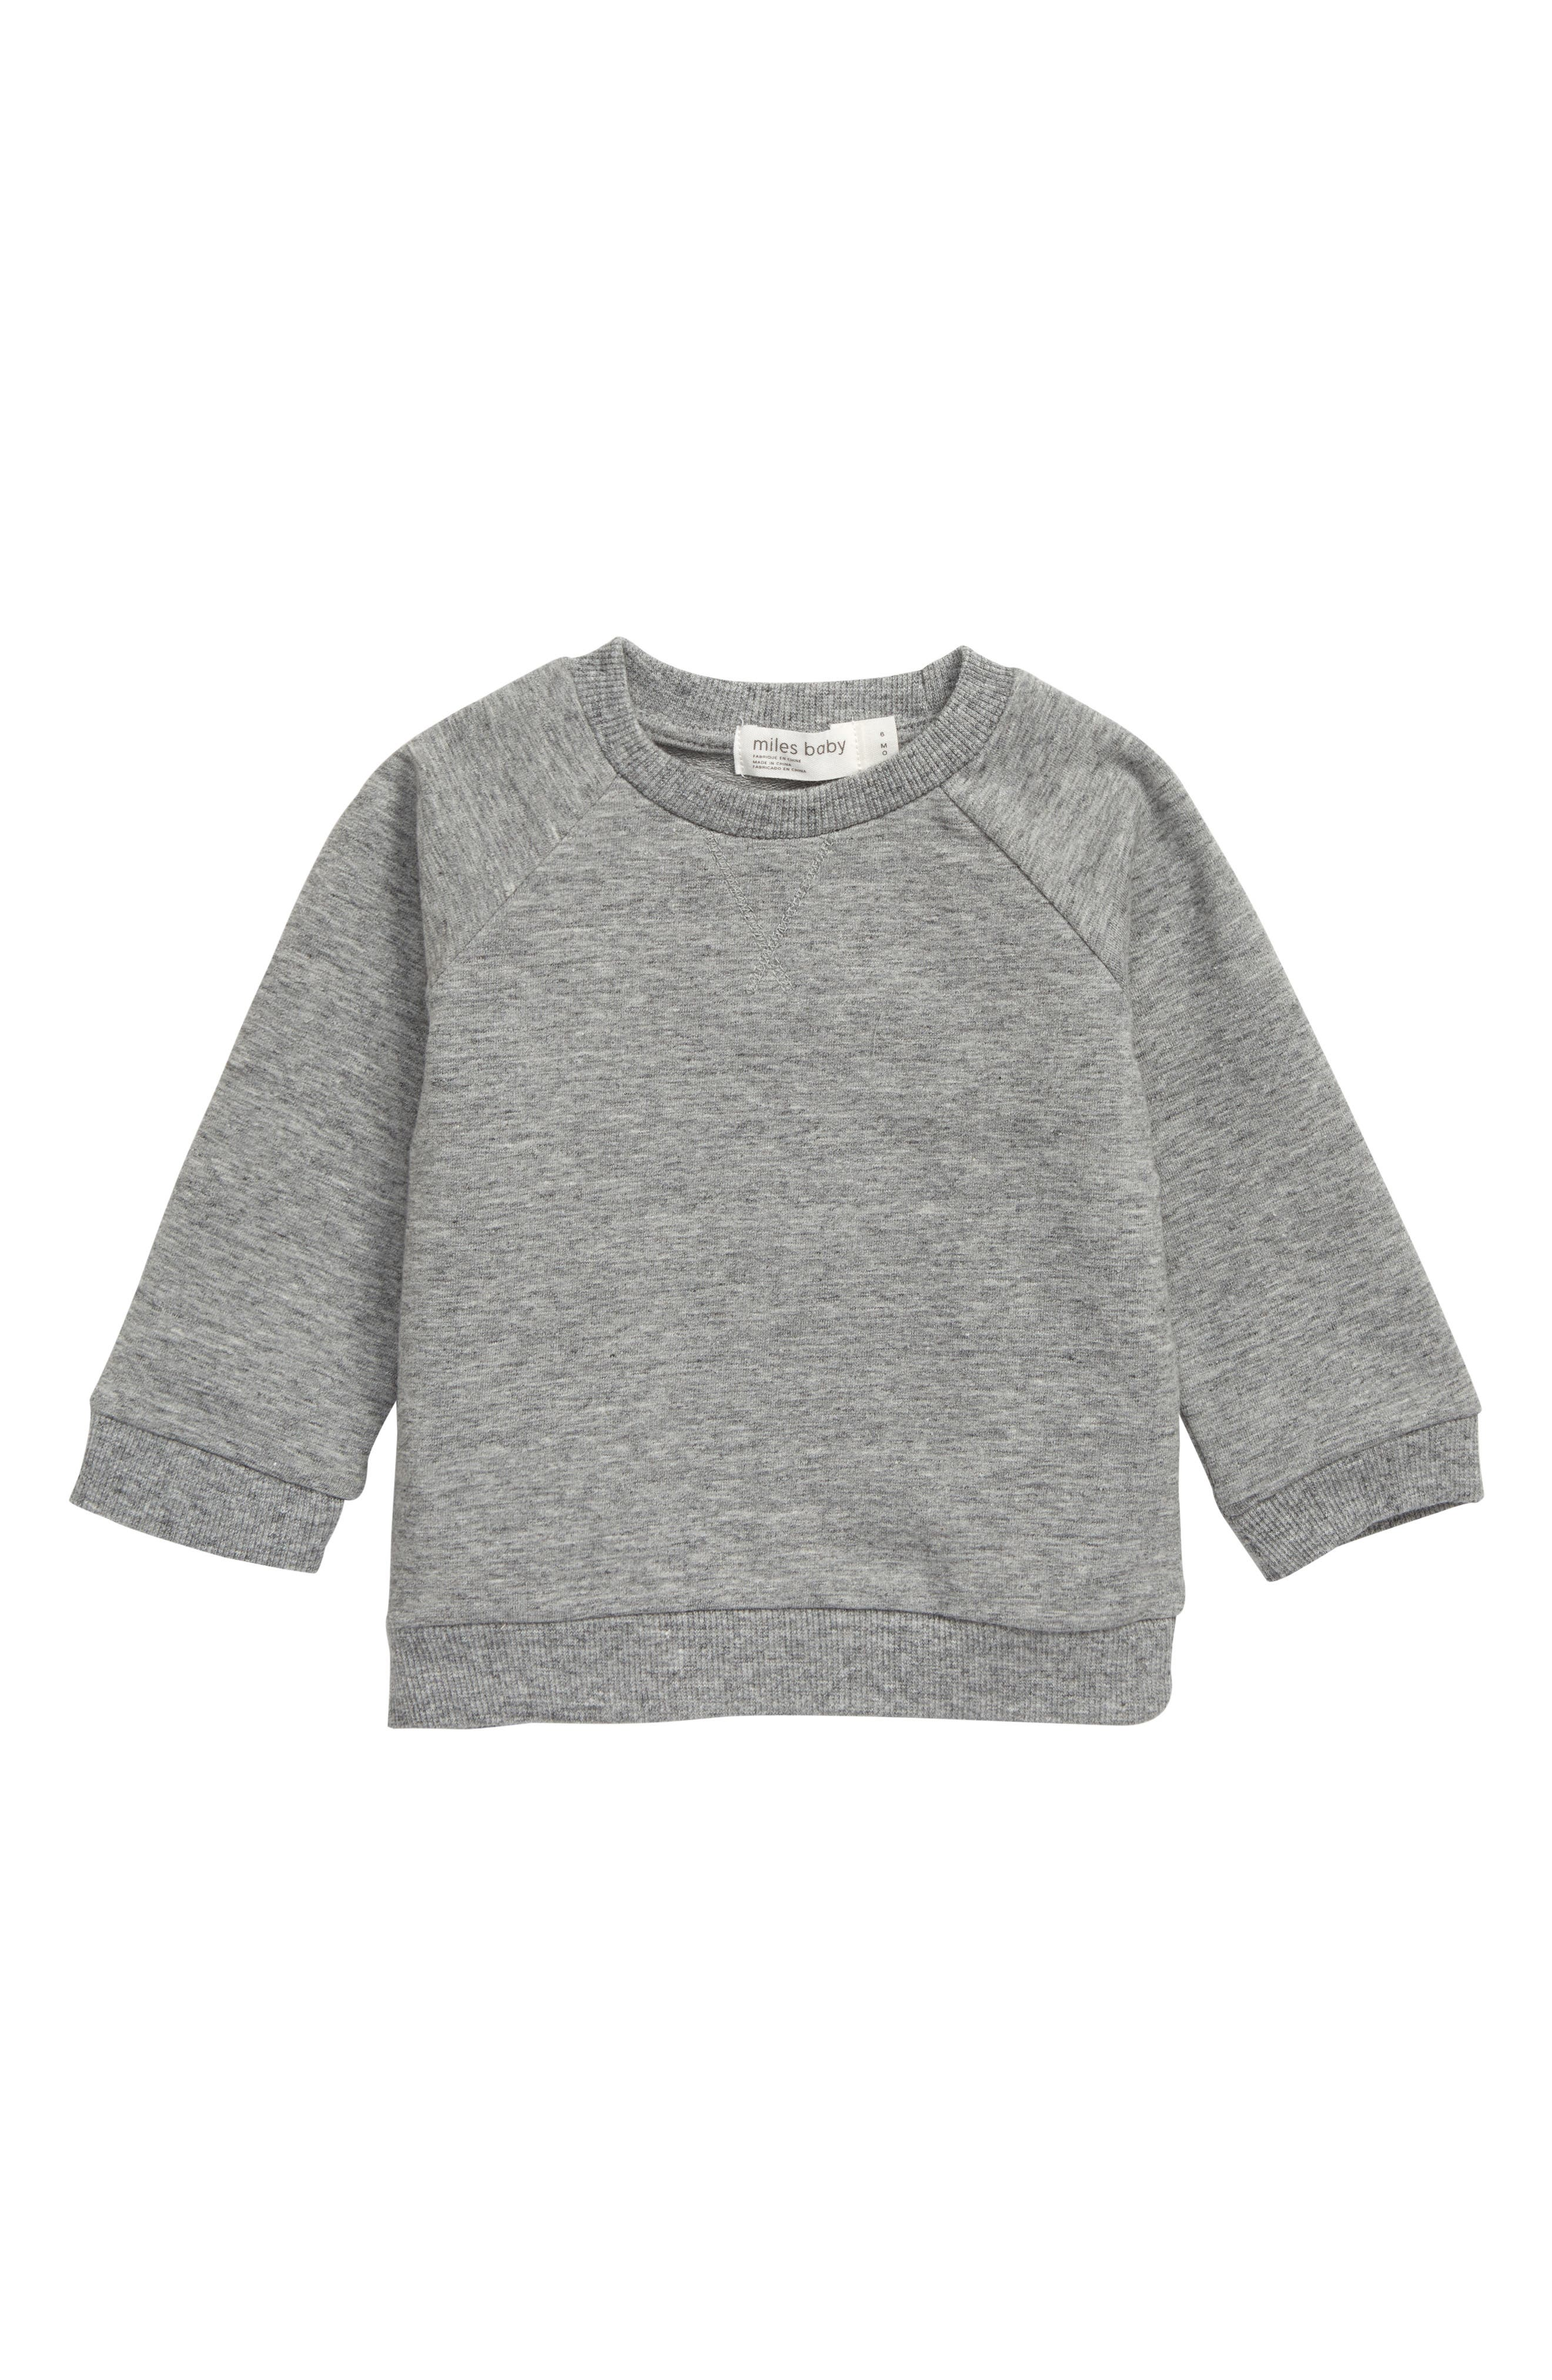 Refresh baby\\\'s everyday cool-weather style with this cute and comfortable stretch-organic-cotton pullover. Style Name: Miles Baby Stretch Organic Cotton Sweatshirt (Baby). Style Number: 5886351. Available in stores.